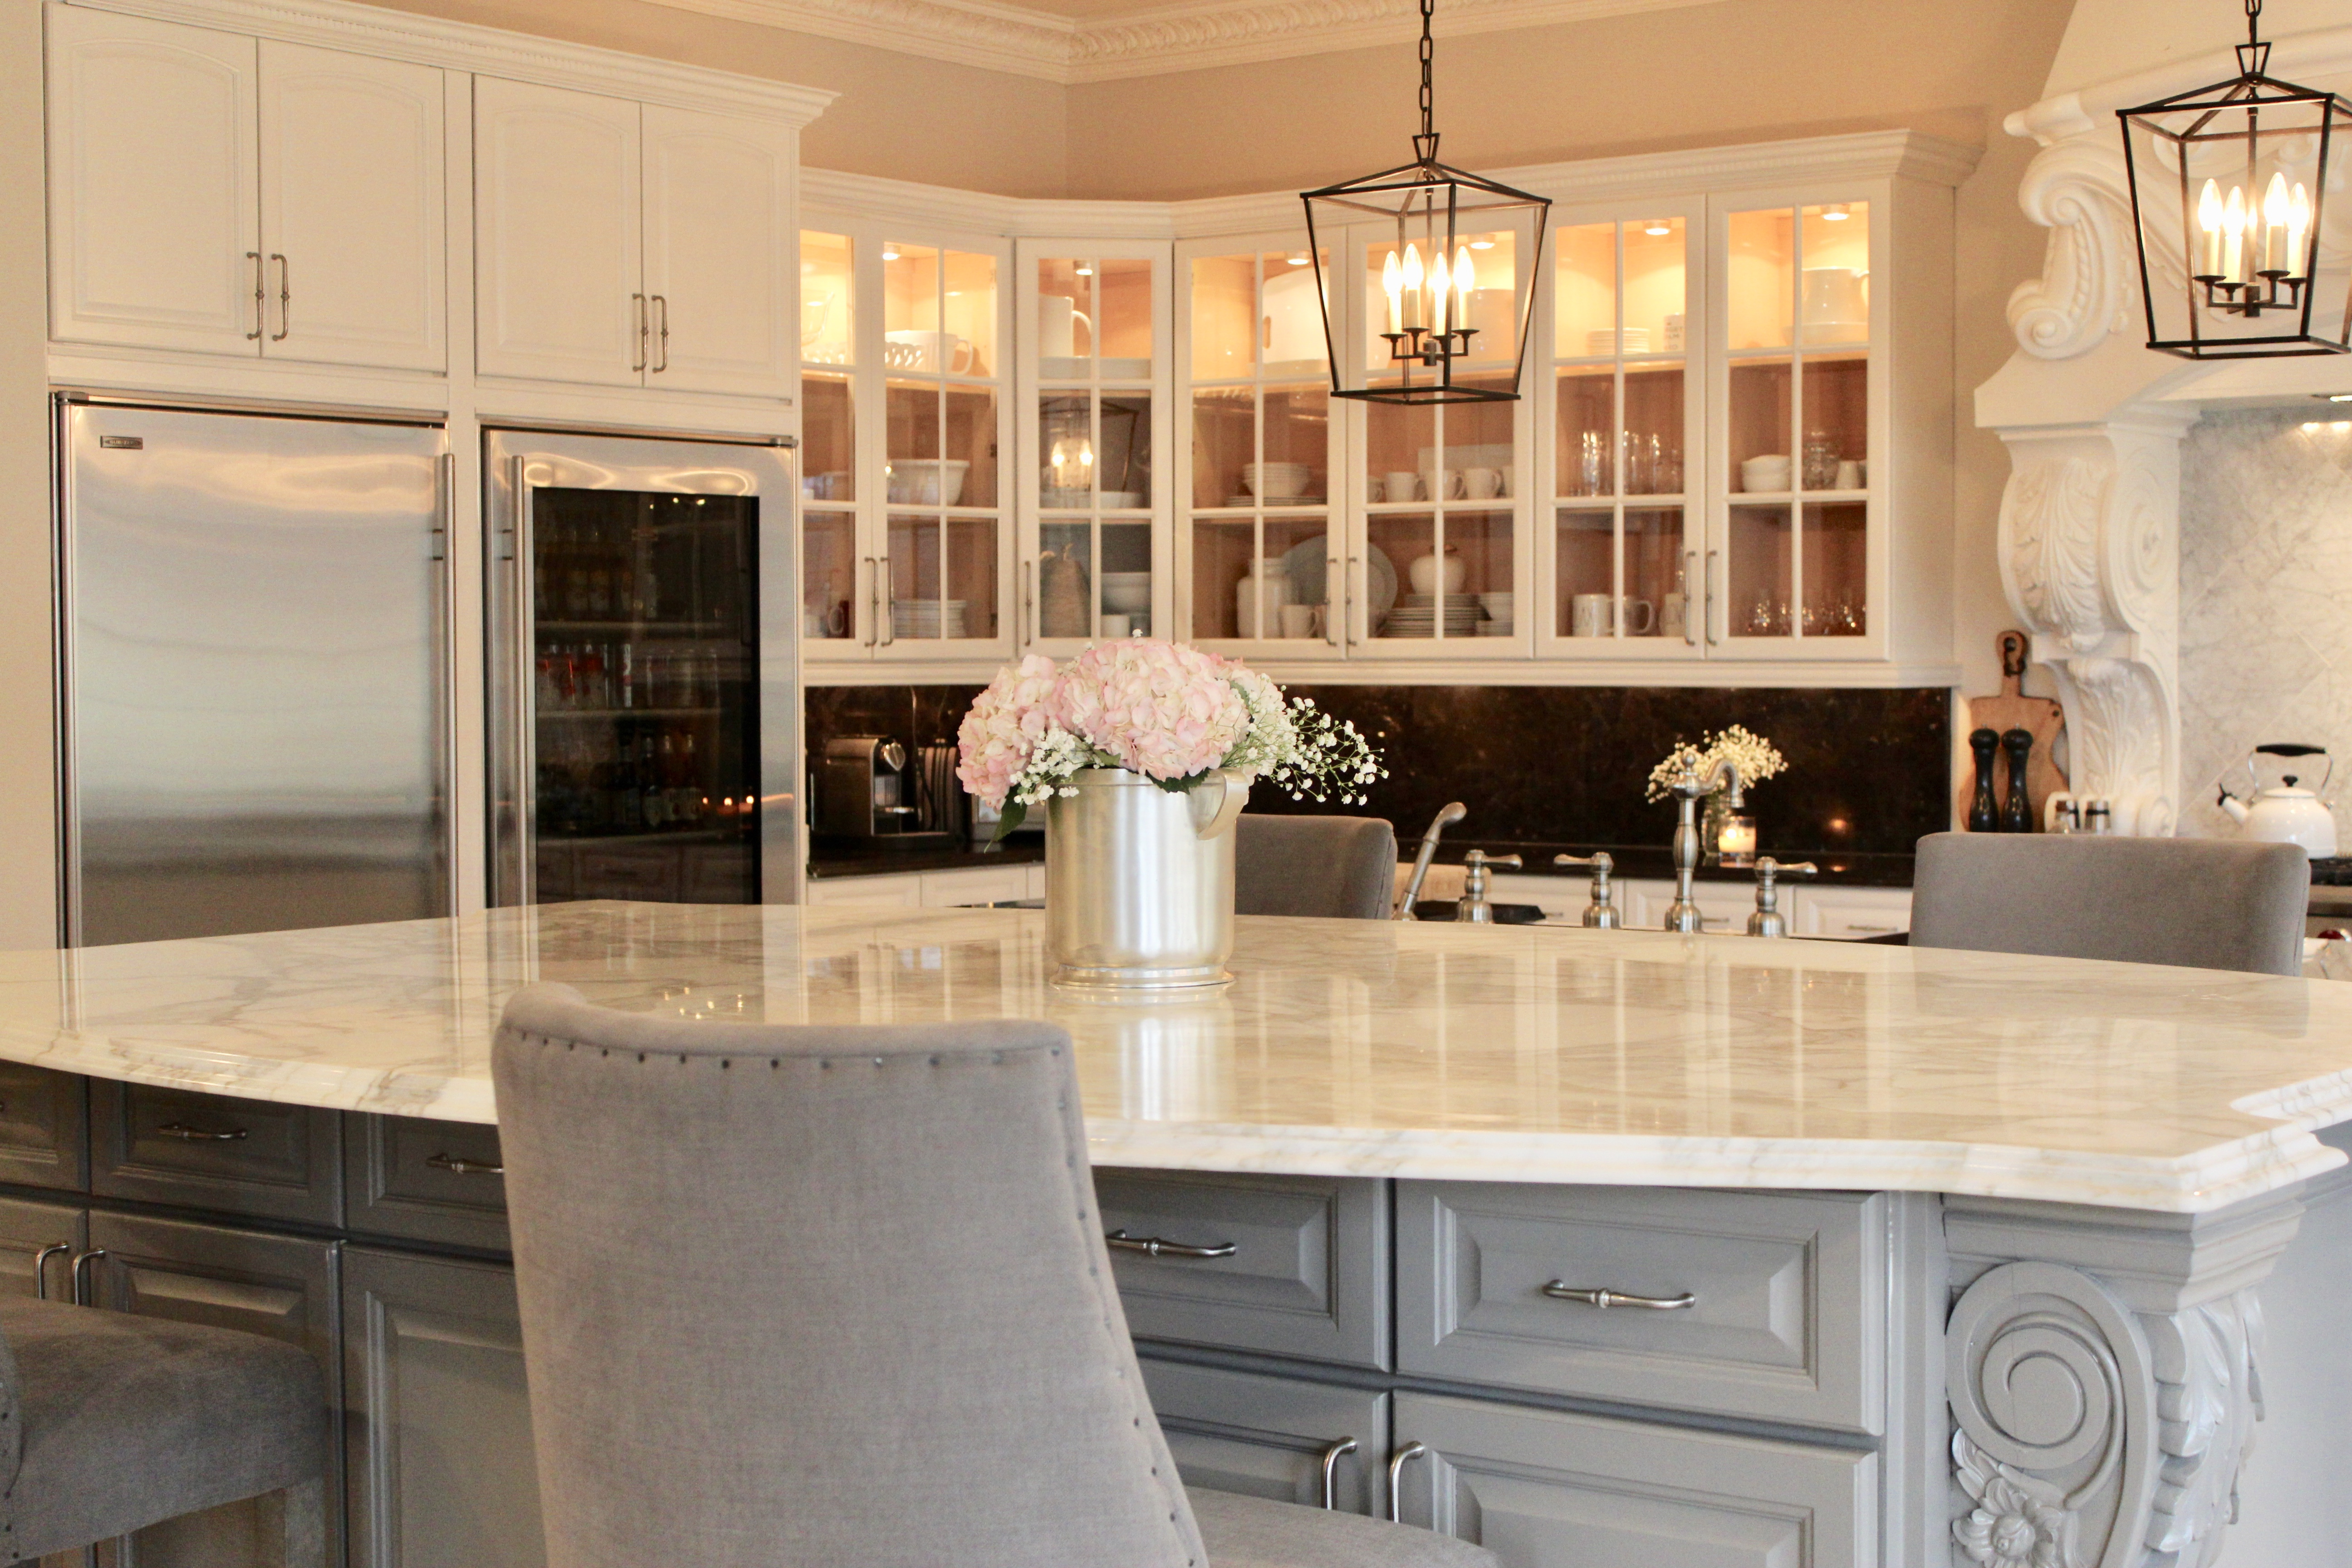 Modern French Country Kitchen Update On Our Modern French Country Kitchen Remodel One Room